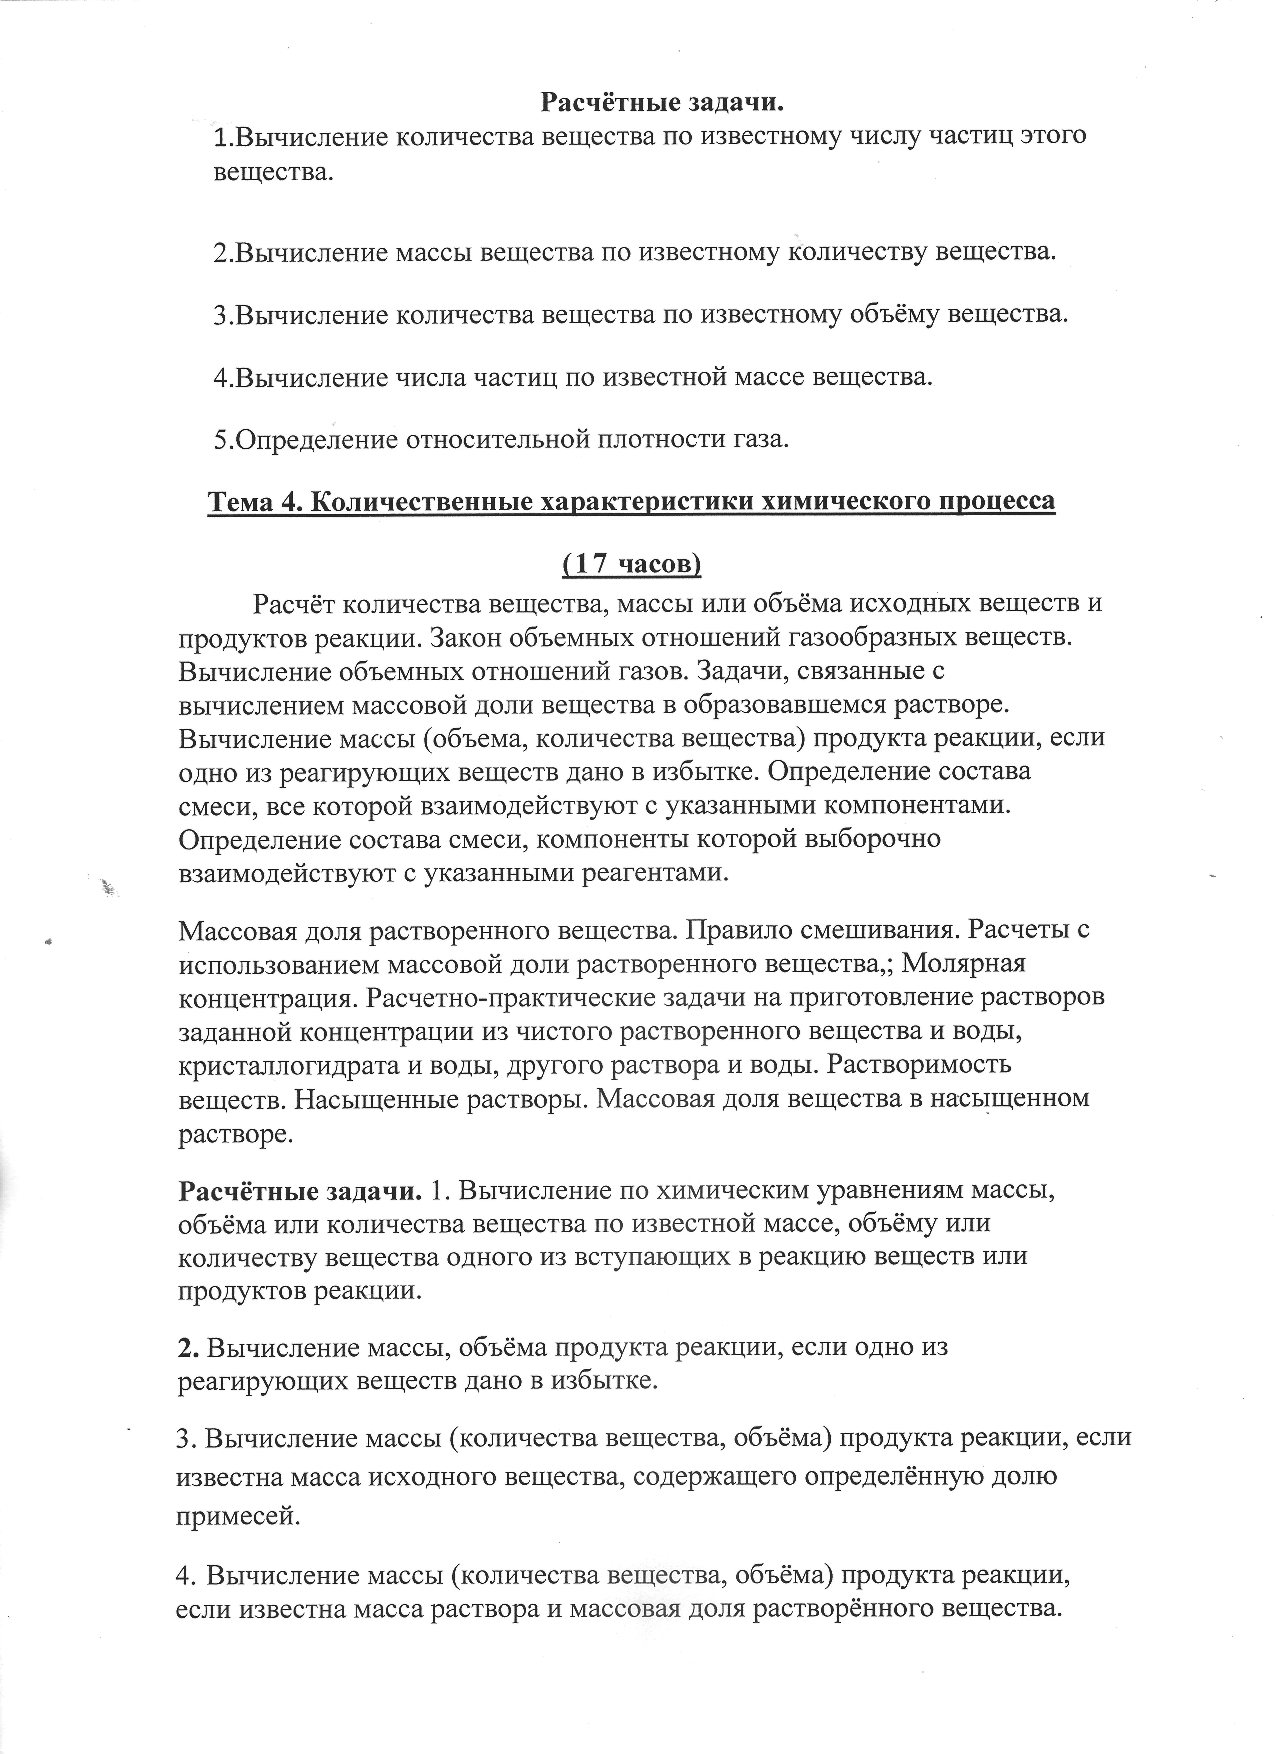 C:\Users\admin\Pictures\Новая папка\img062.jpg